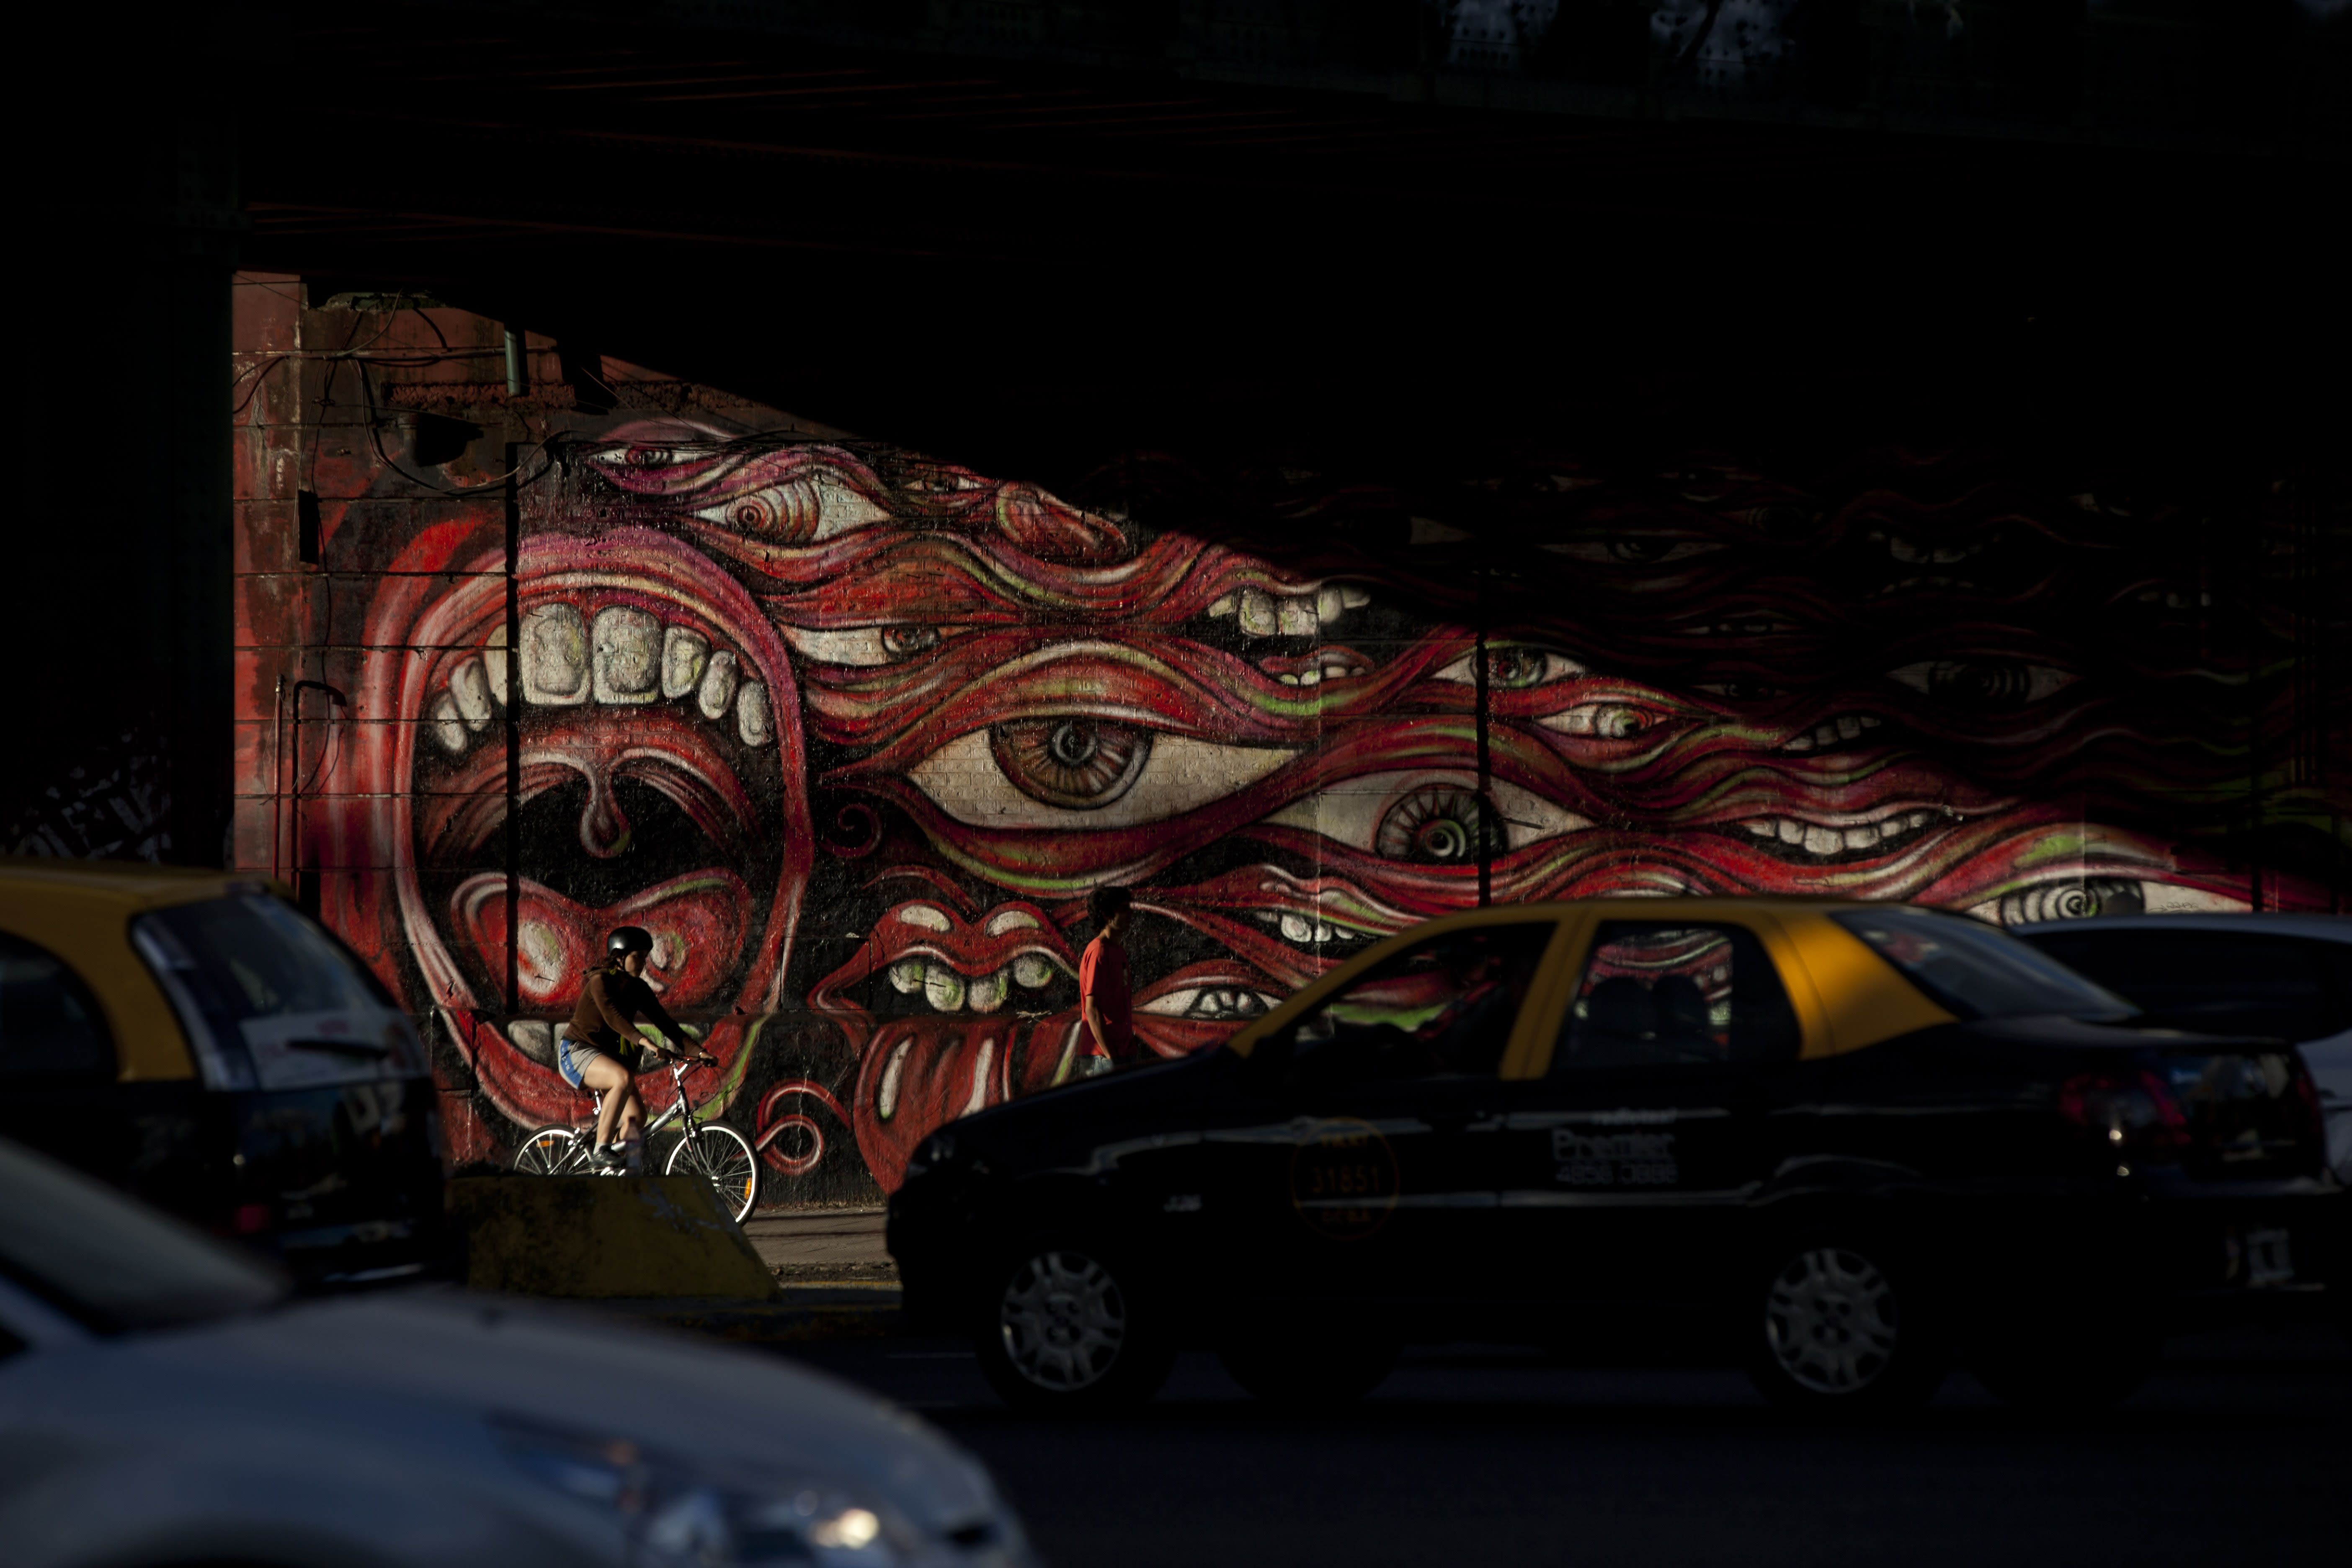 "In this March 5, 2013 photo, a mural titled ""Por Una Cabeza"" by artist Pelado covers a wall in the Palermo neighborhood of Buenos Aires Argentina. Buenos Aires has become one of the world's top capitals for international street art, with painters from around the world converting the walls of plazas and buildings into enormous murals in hopes of surprising passers-by. (AP Photo/Natacha Pisarenko)"